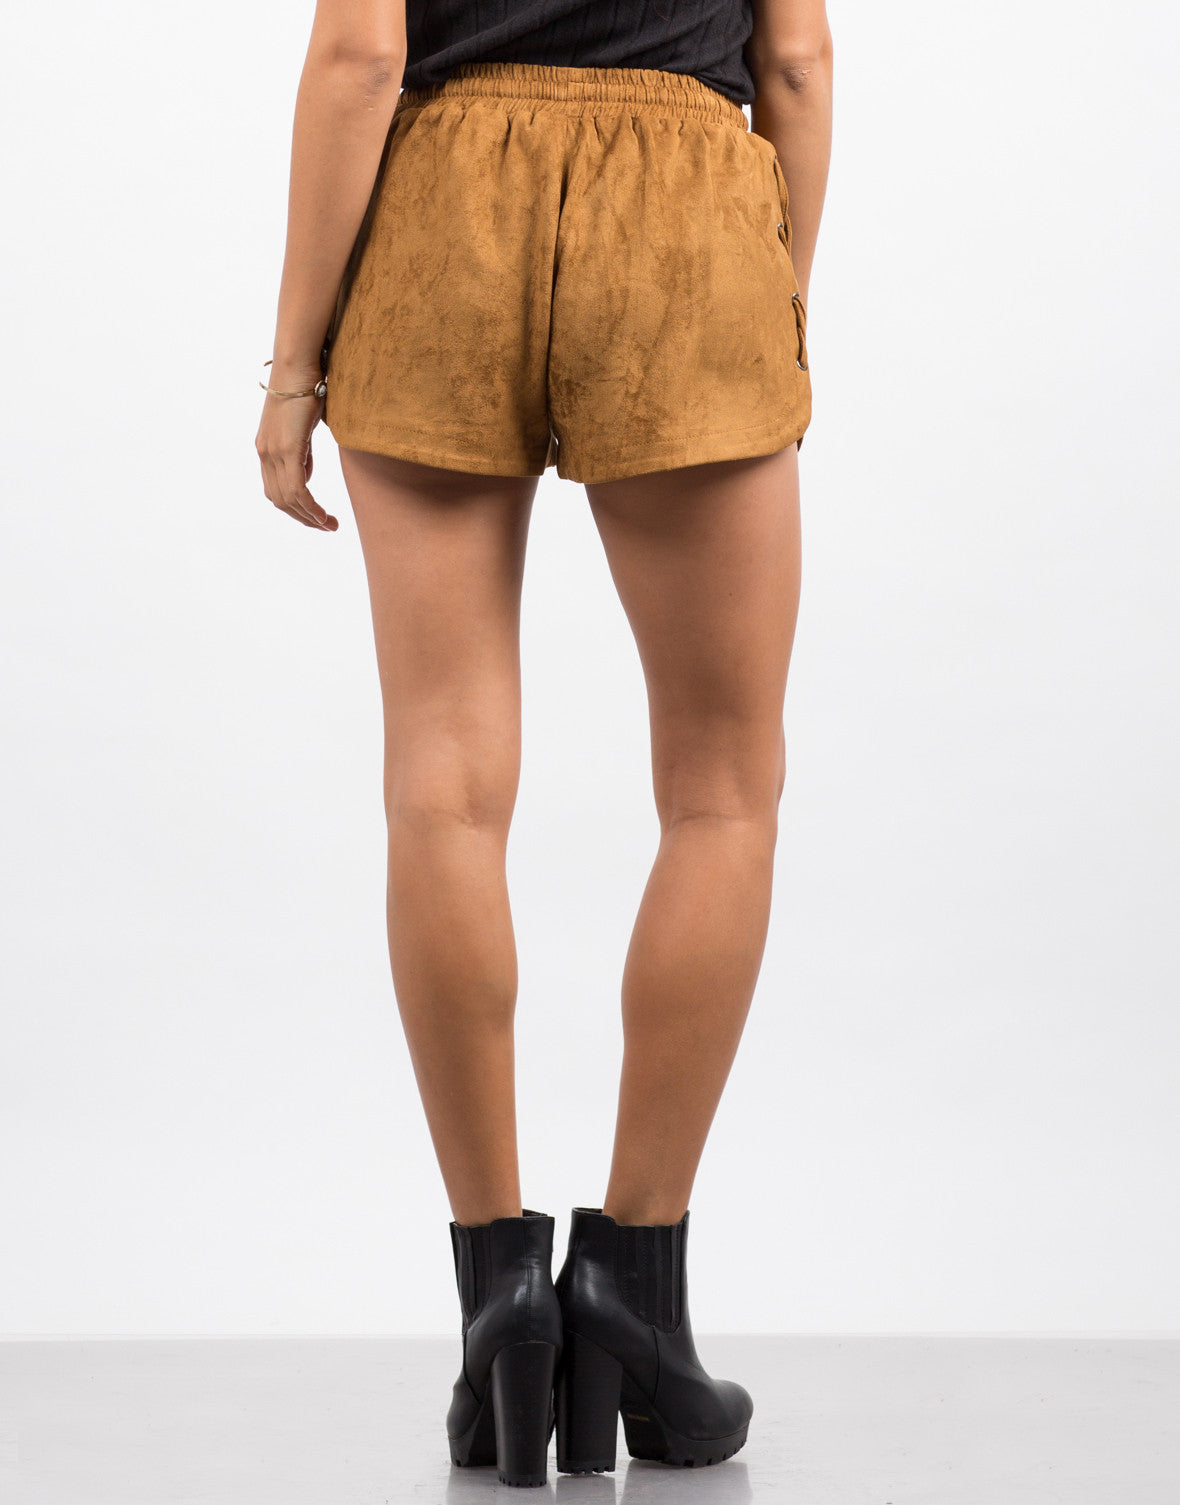 Back View of Suede Lace-Up Shorts